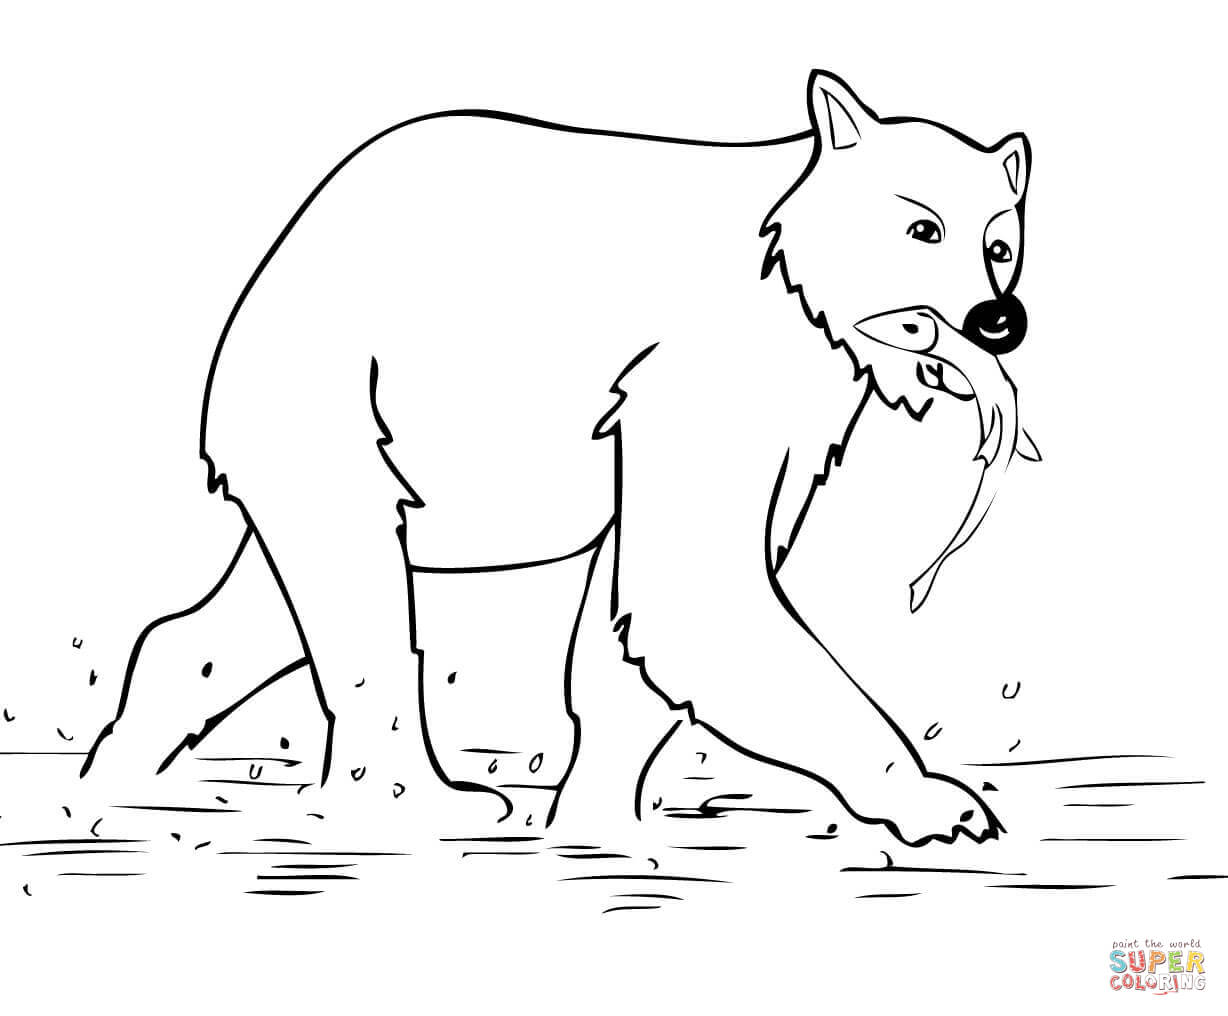 brown bear coloring sheet brown bear coloring pages download and print for free bear brown sheet coloring